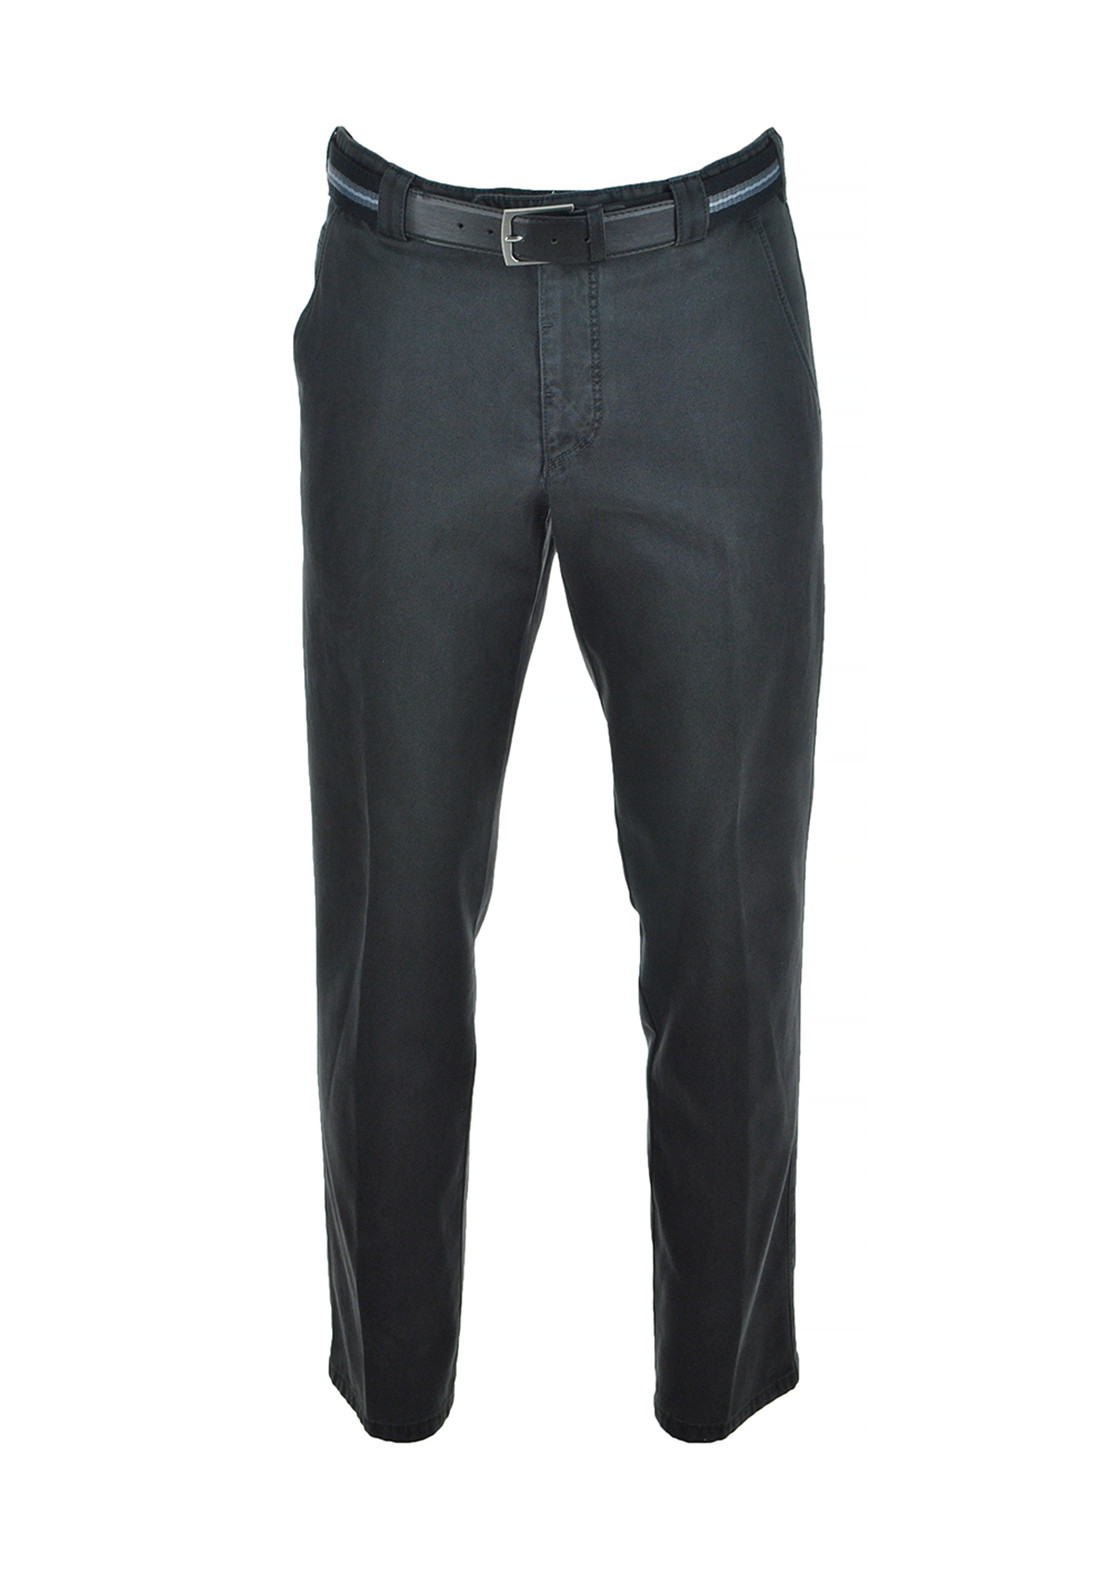 Meyer Mens Roma Cotton Stretch Trouser, Charcoal